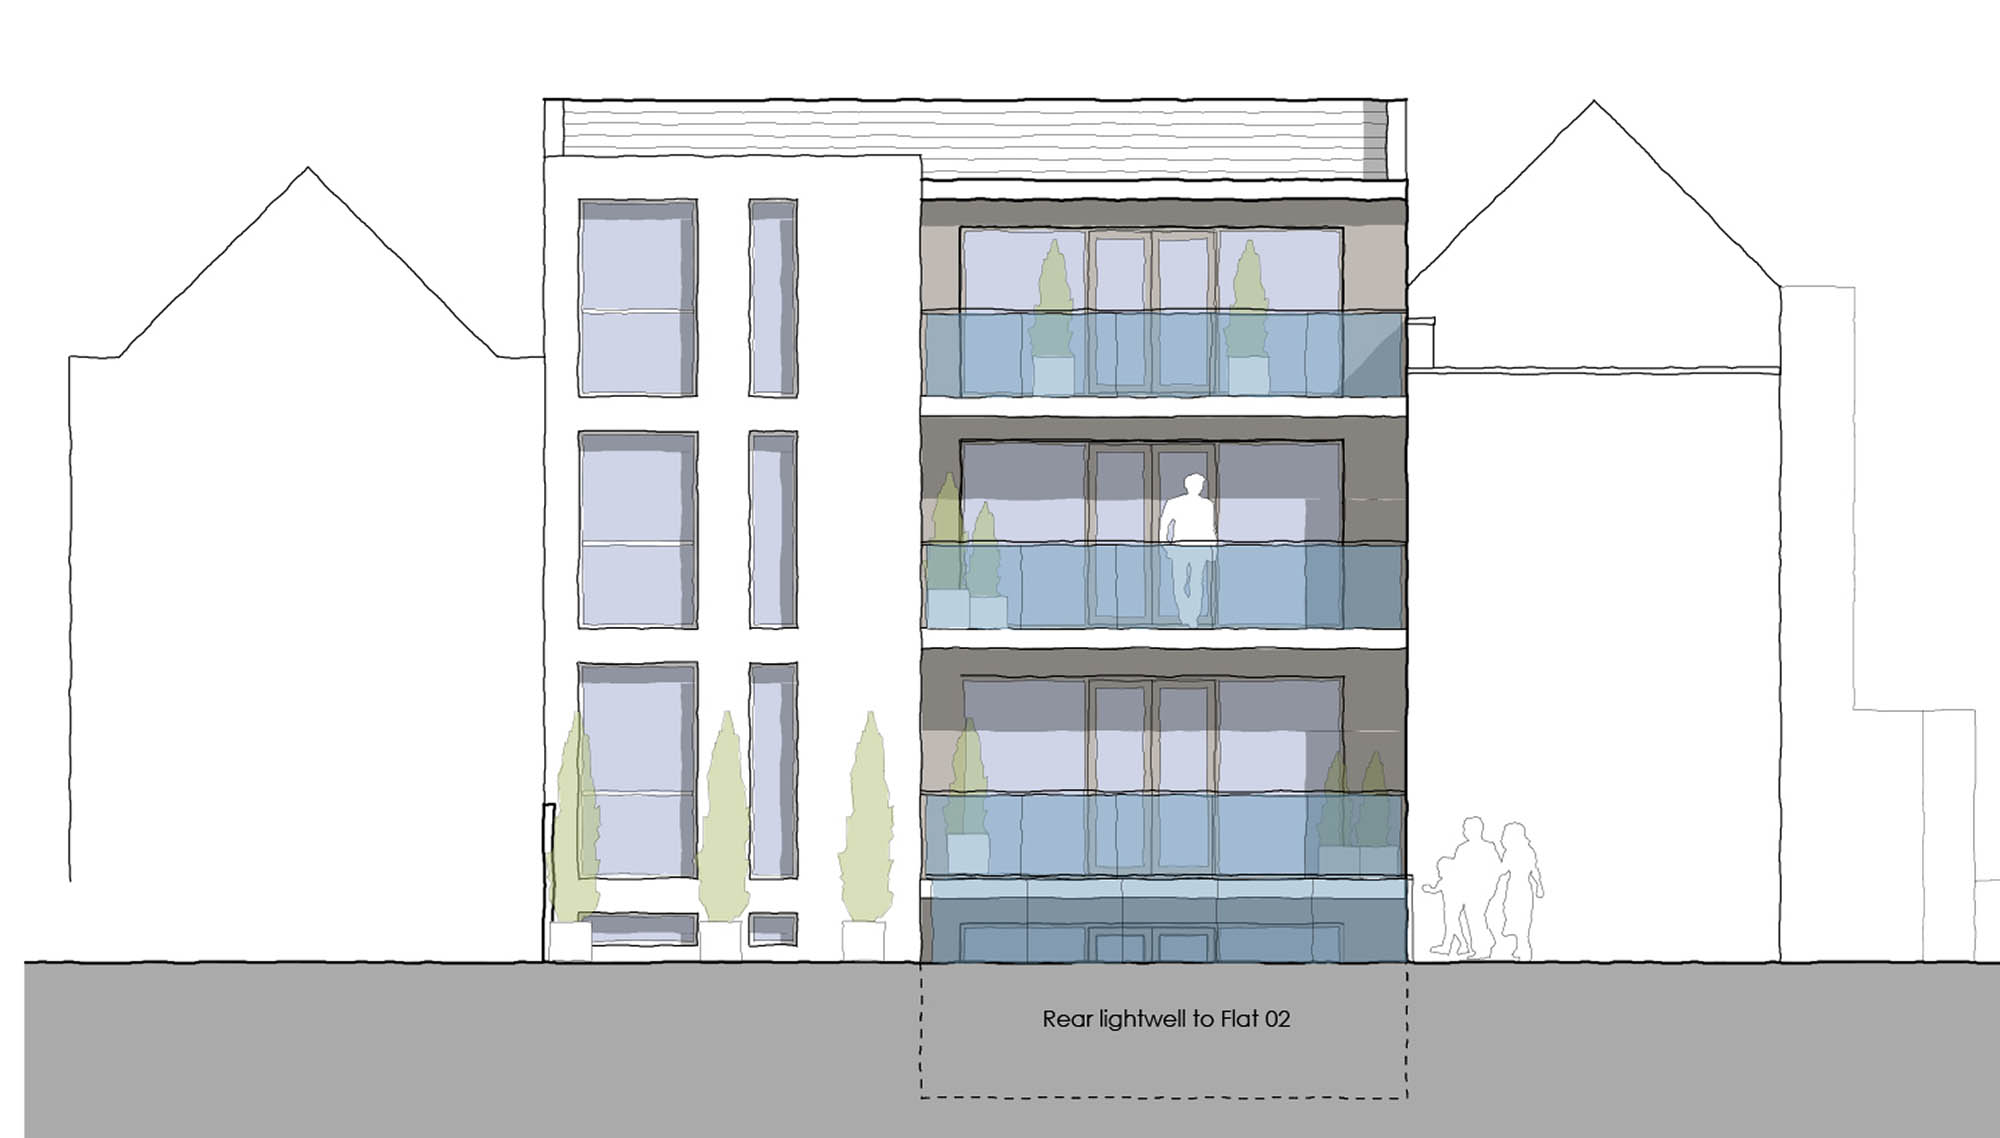 Rear elevation drawing for Richmond Road luxury flats renovation and development project